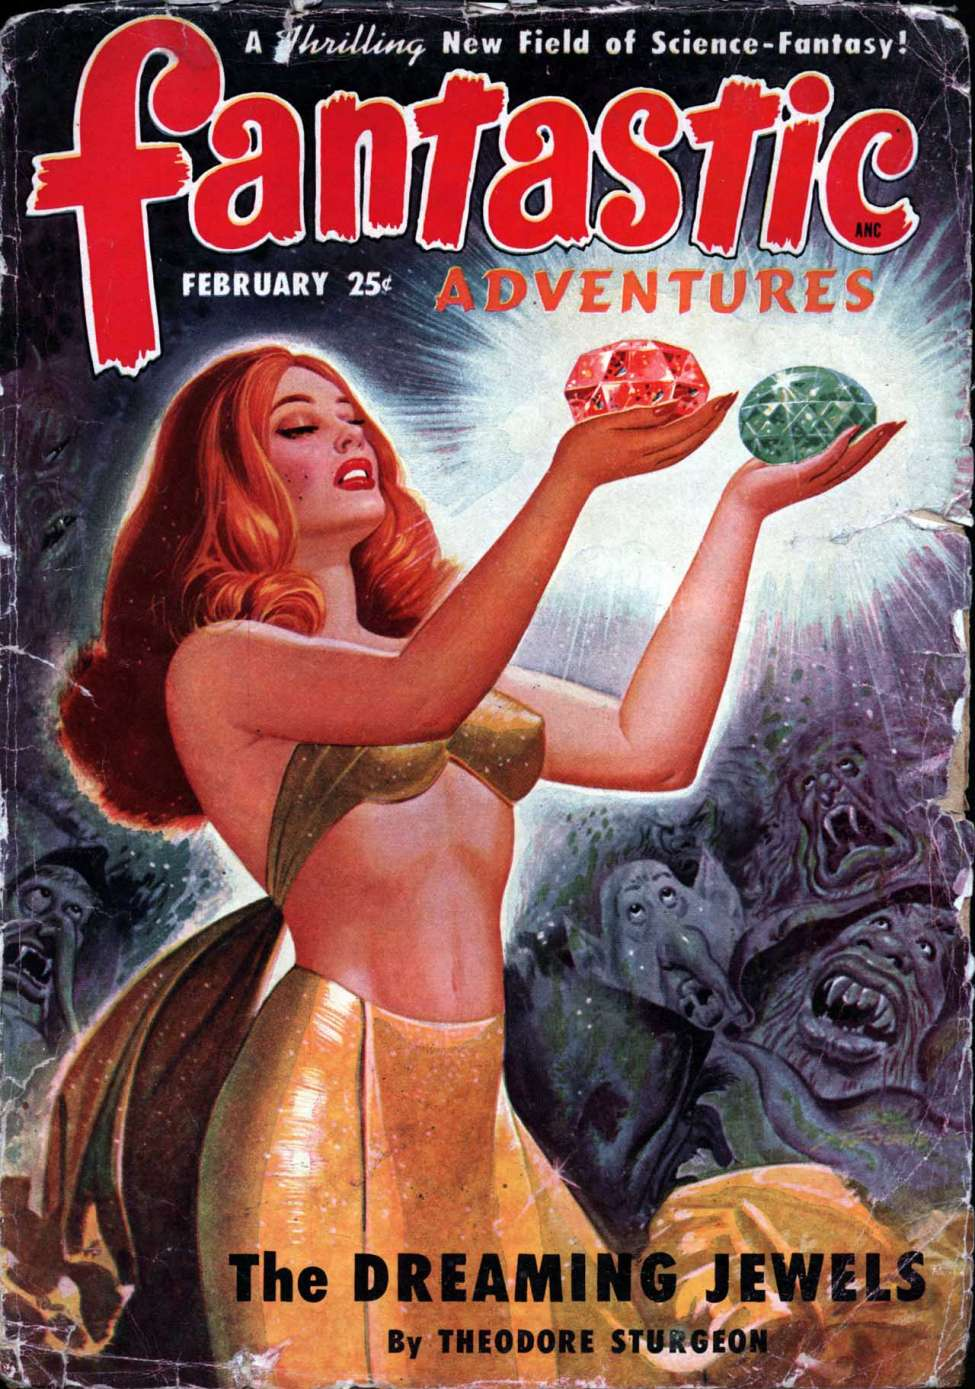 Comic Book Cover For Fantastic Adventures v12 02 - The Dreaming Jewels - Theodore Sturgeon